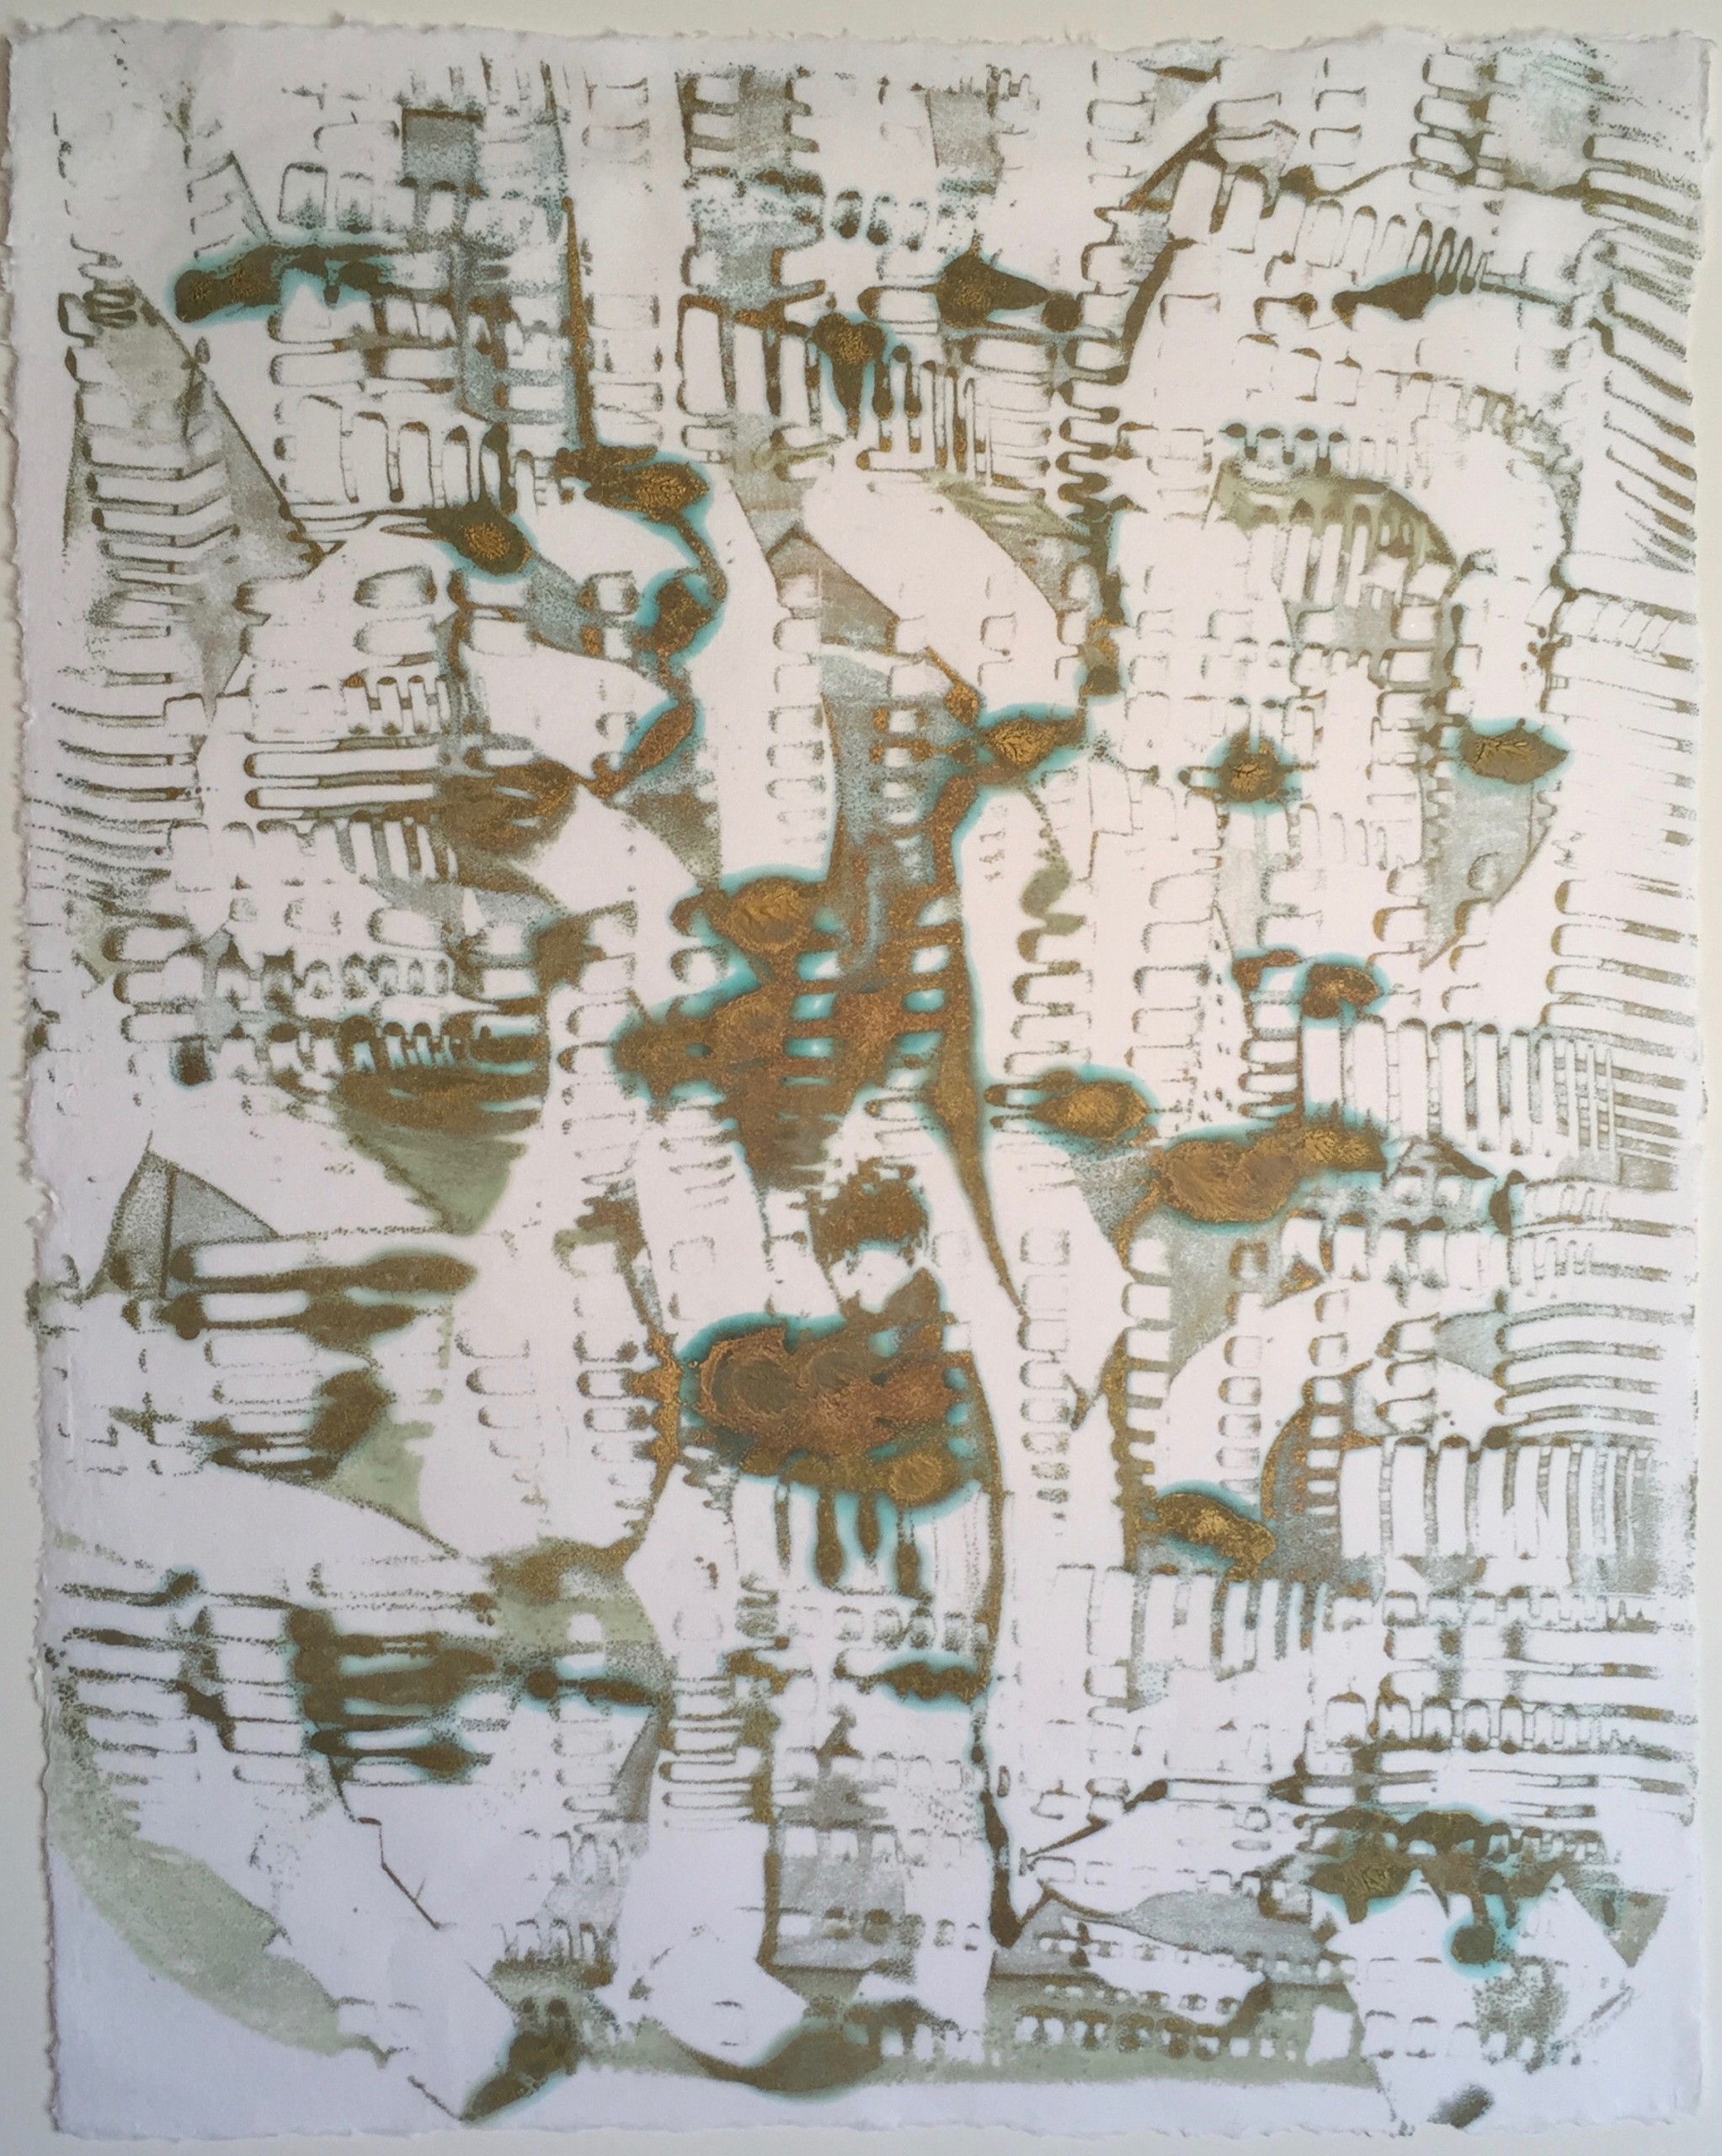 Egyptian Map, Encaustic on Japanese Paper, 27 1/2